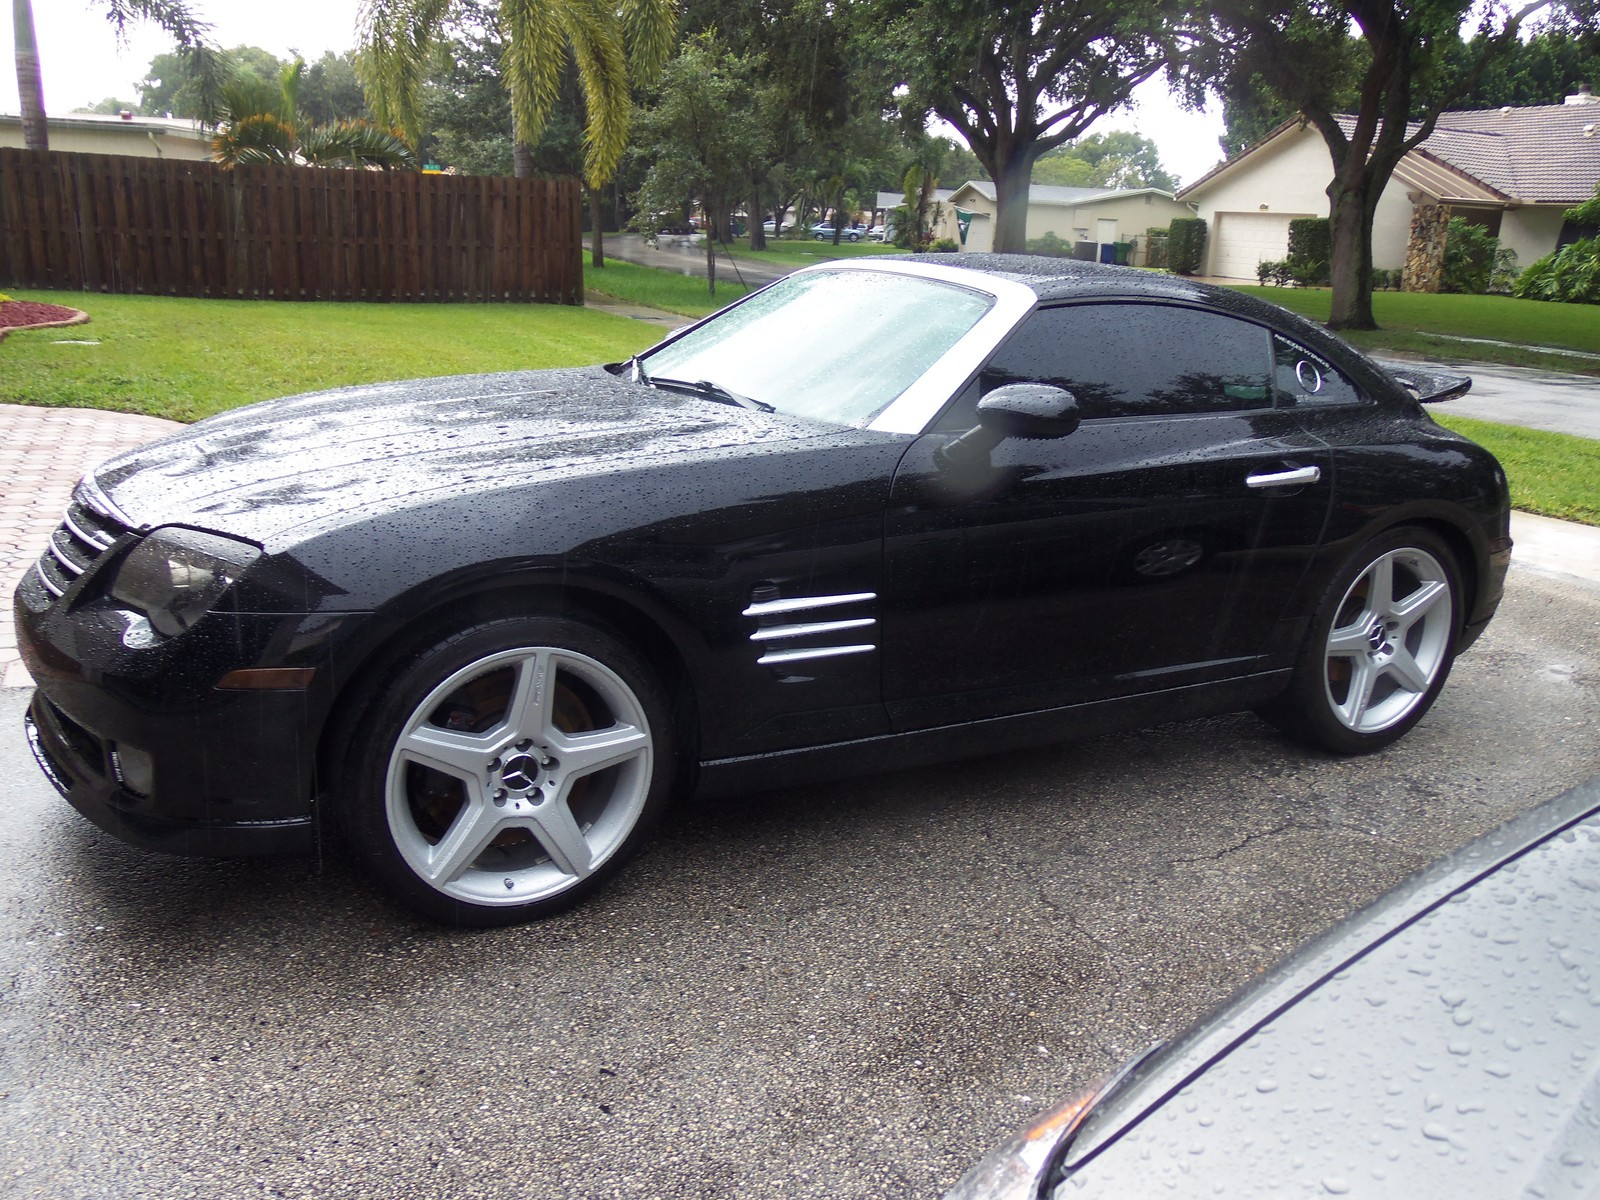 Black 2005 Chrysler Crossfire jim's SRT